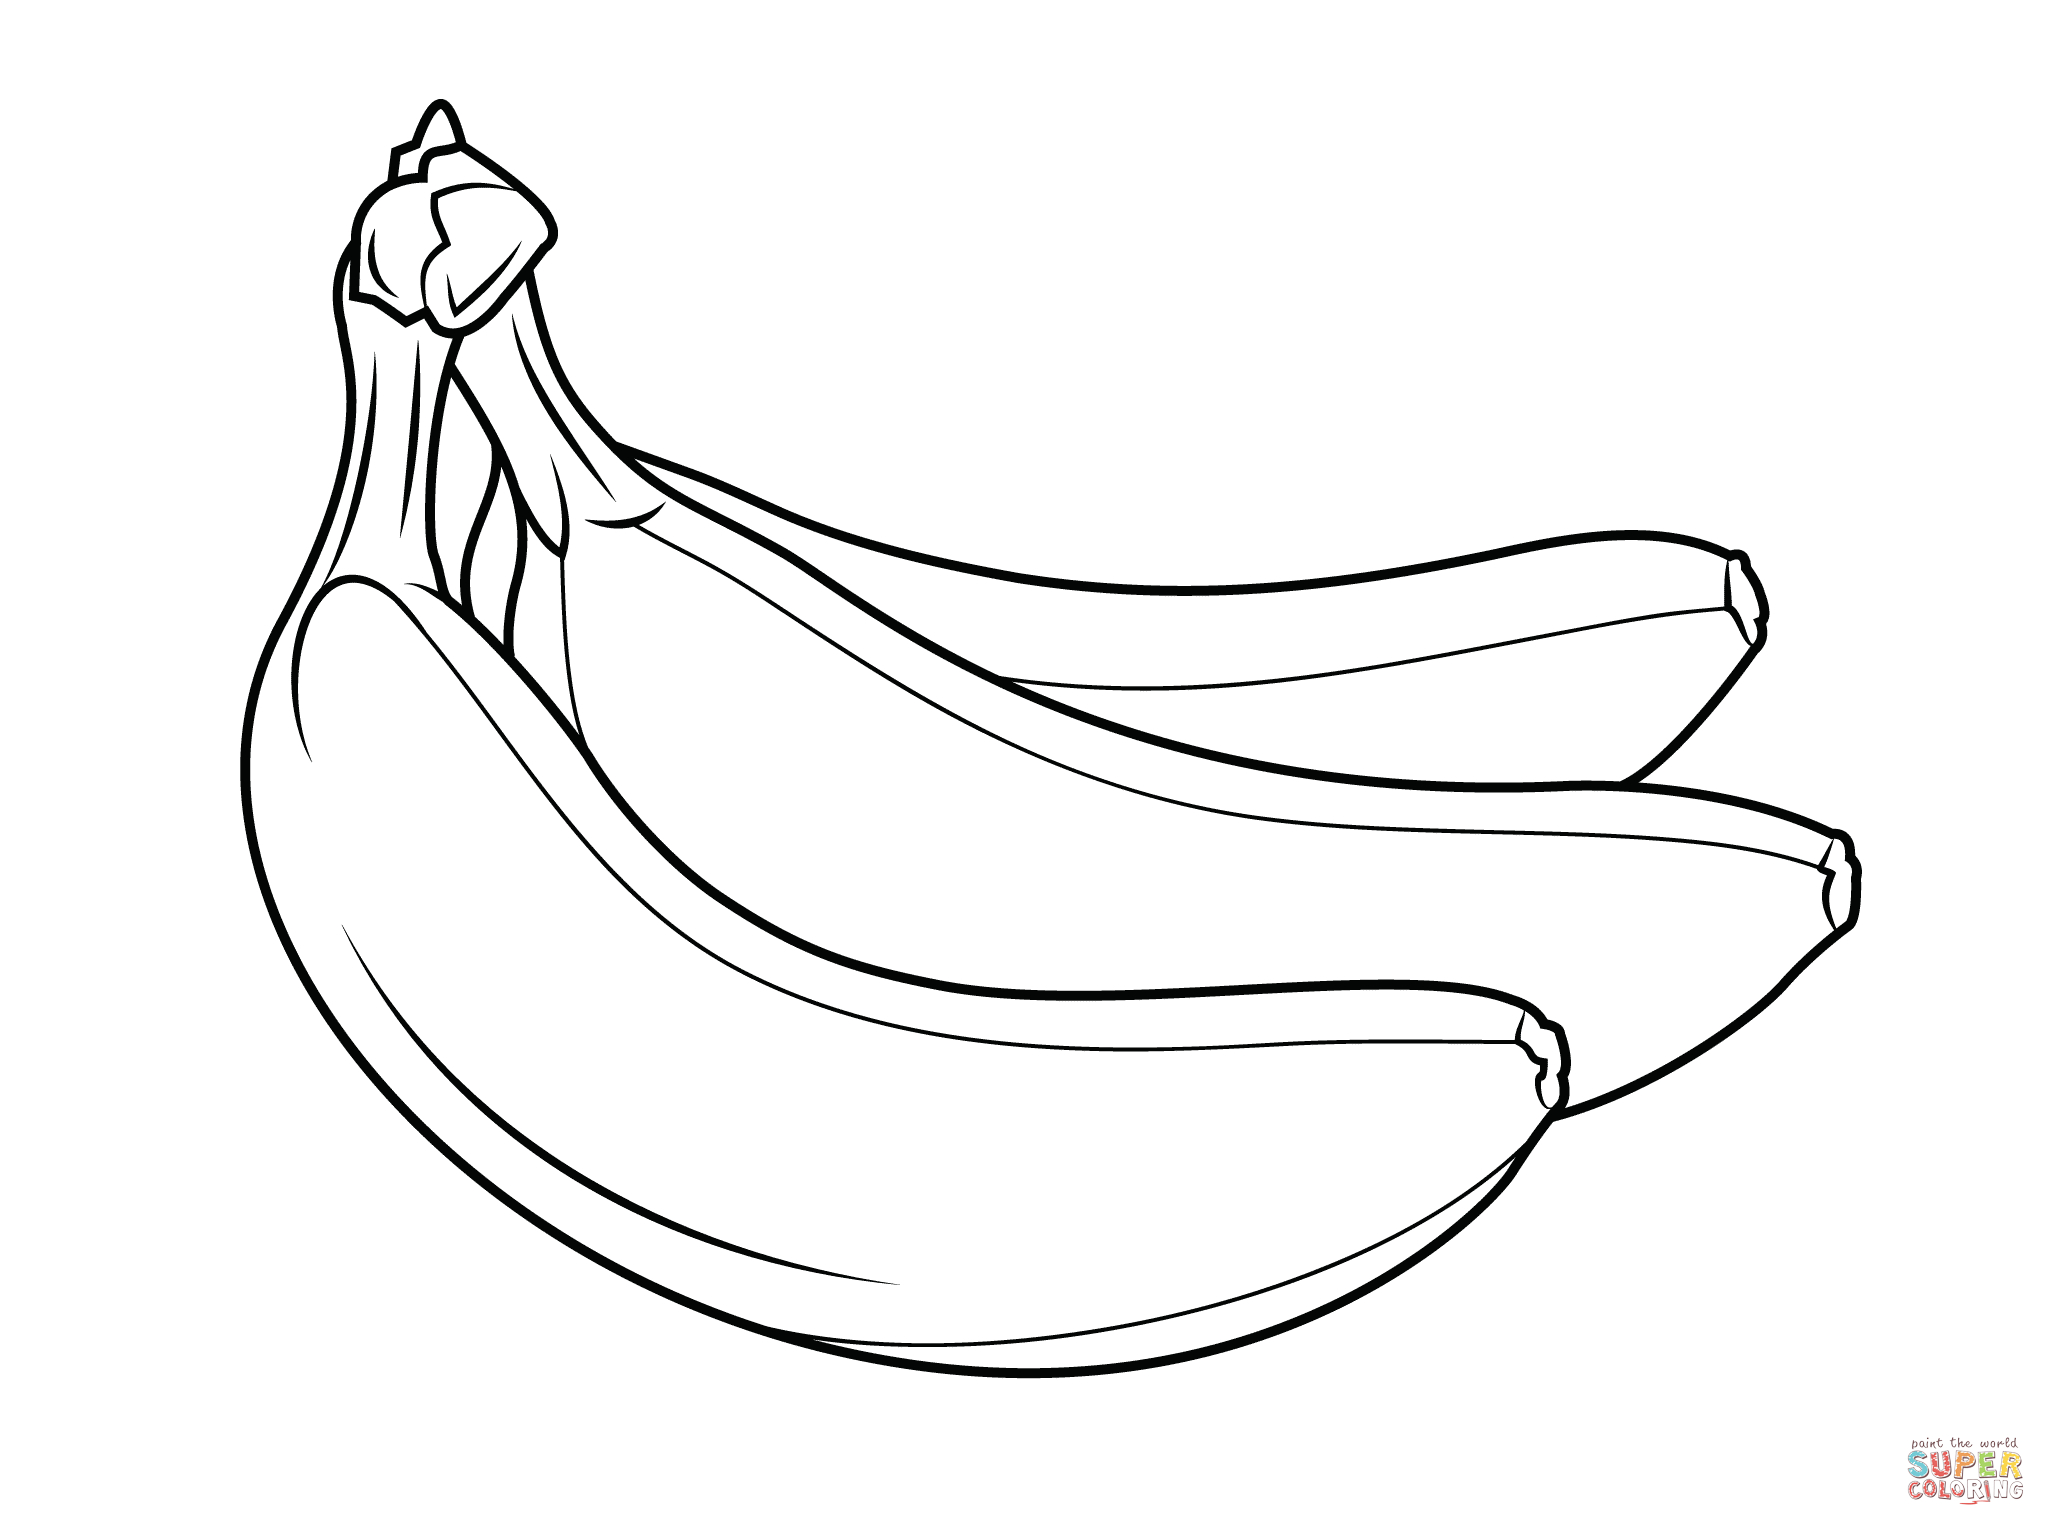 - 23+ Great Picture Of Banana Coloring Page - Birijus.com